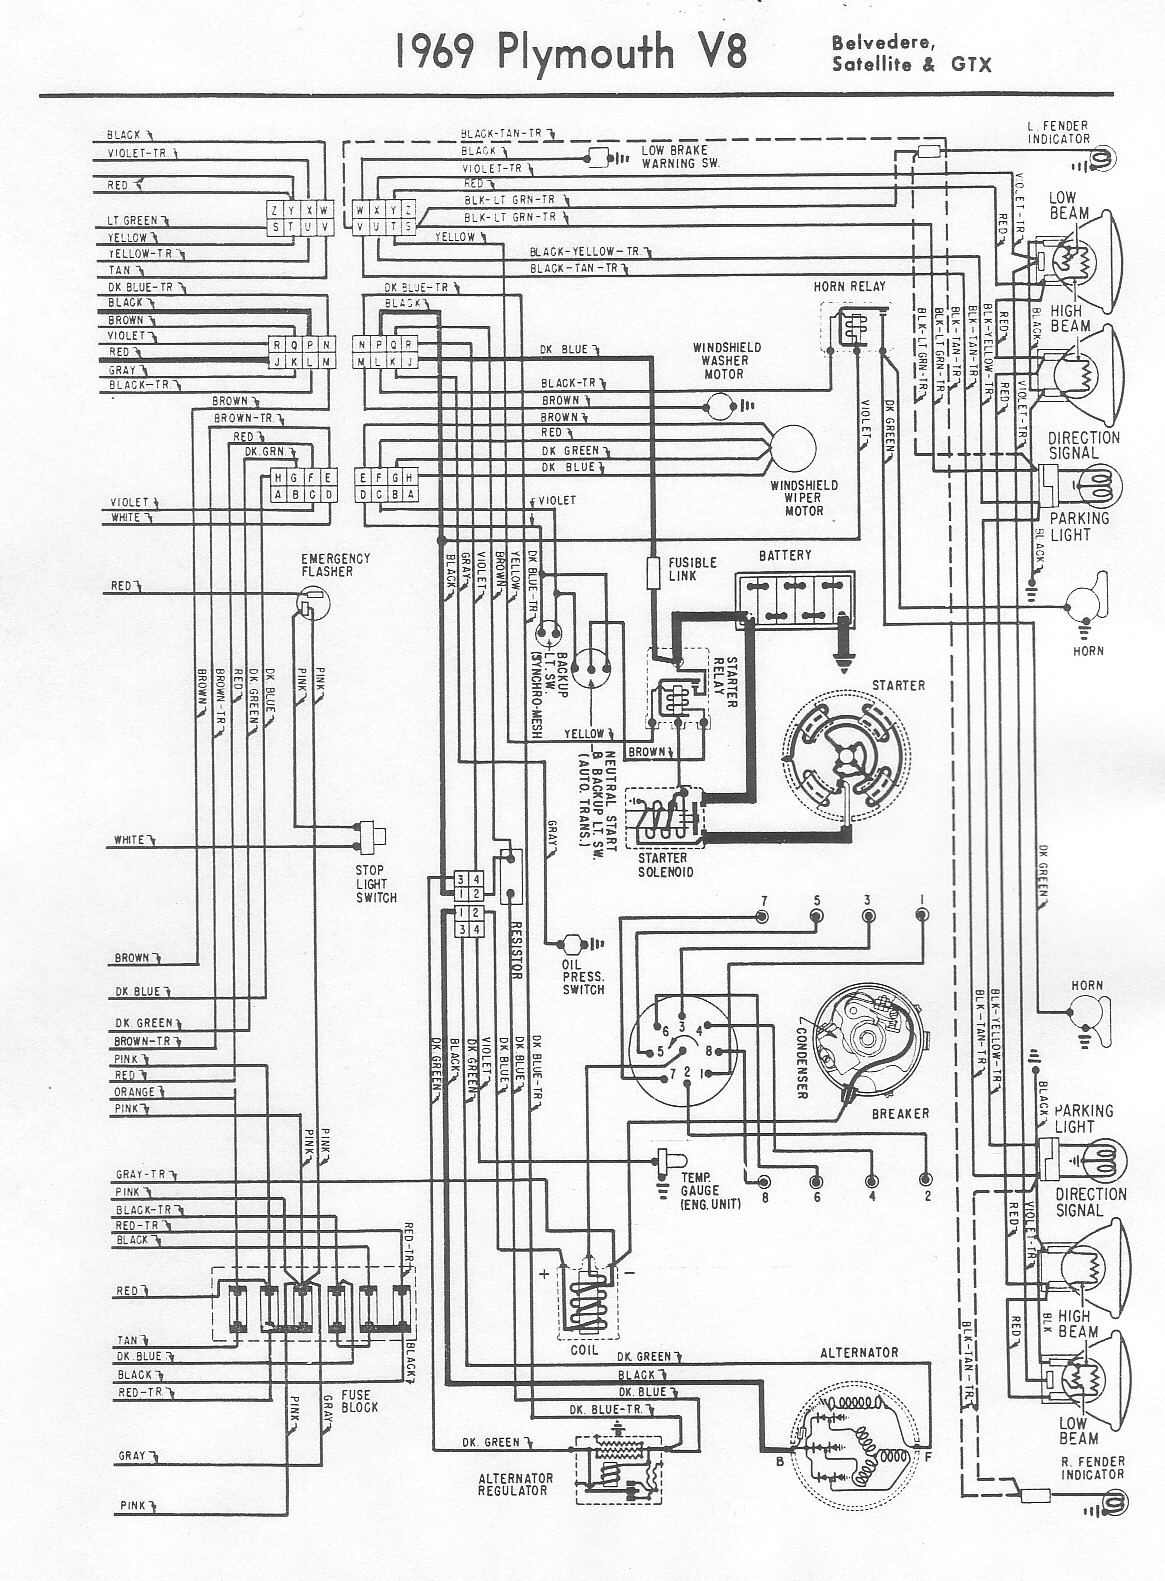 Plymouth Roadrunner Wiring Diagram Manual Of 1972 Corvette Dash 1970 Road Runner 1967 1969 1968